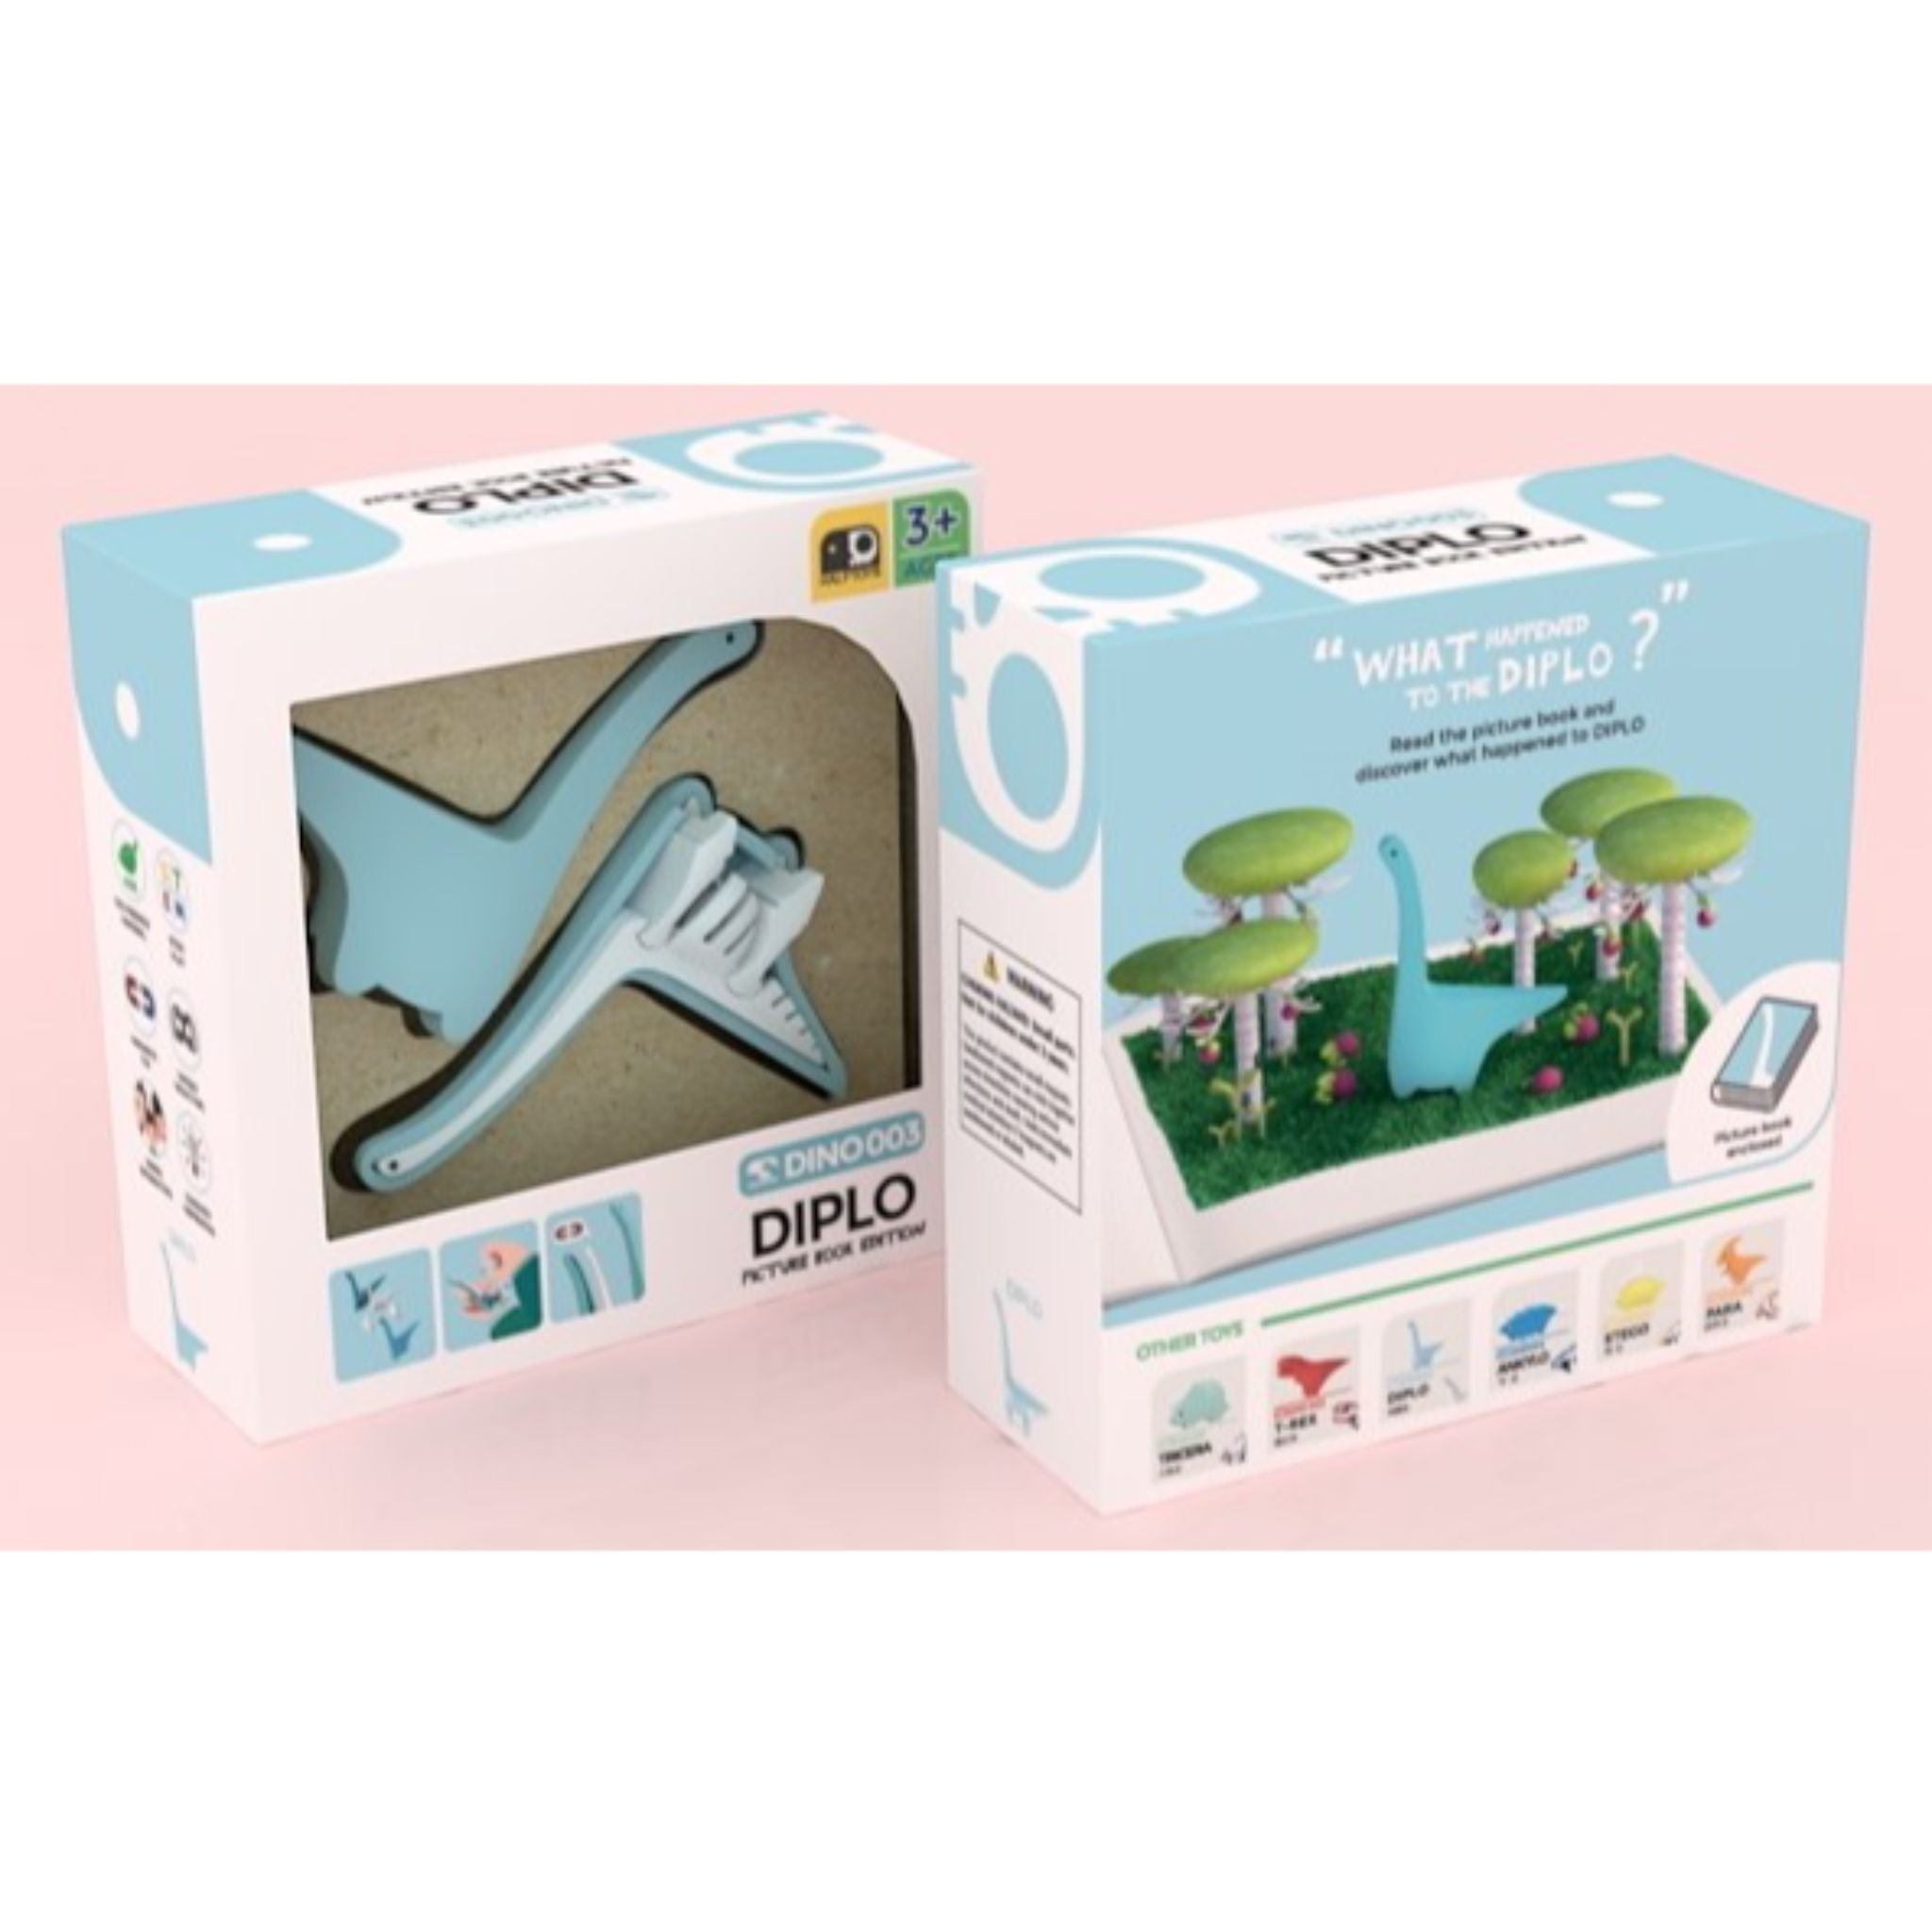 HALFTOYS® Diplo with Picture Book